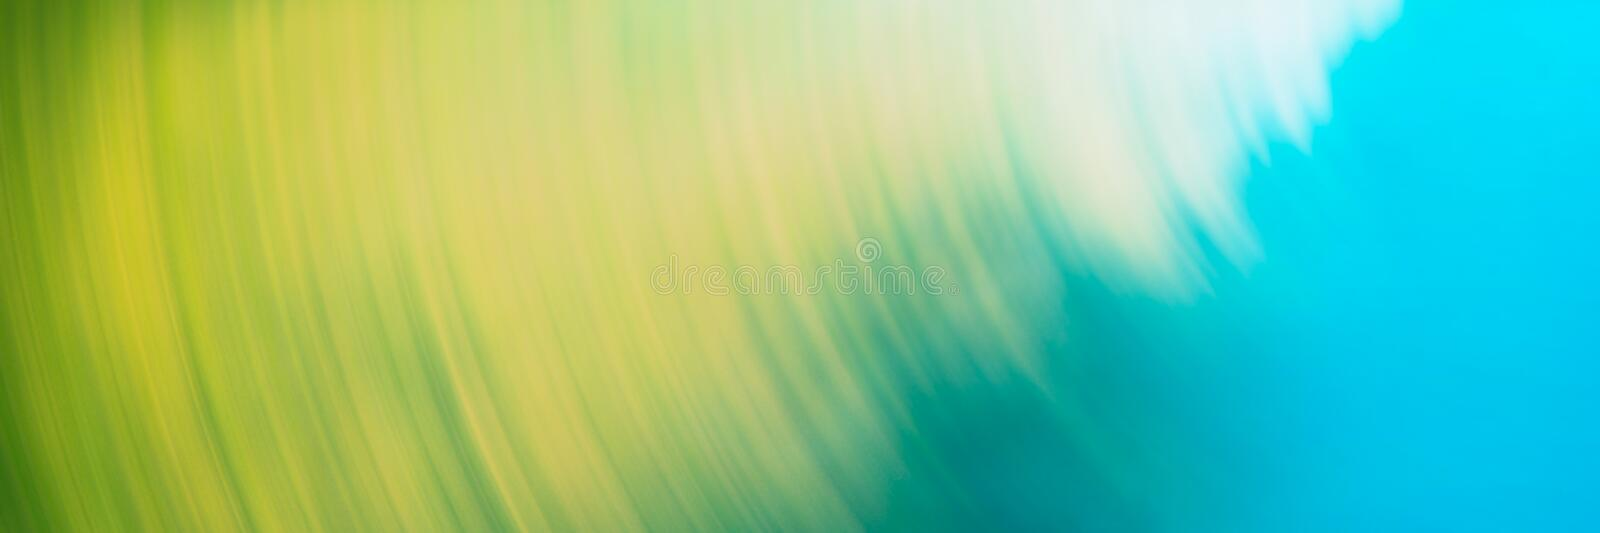 Abstract blurred light background, yellow, blue circular lines. Web banner for your design stock image